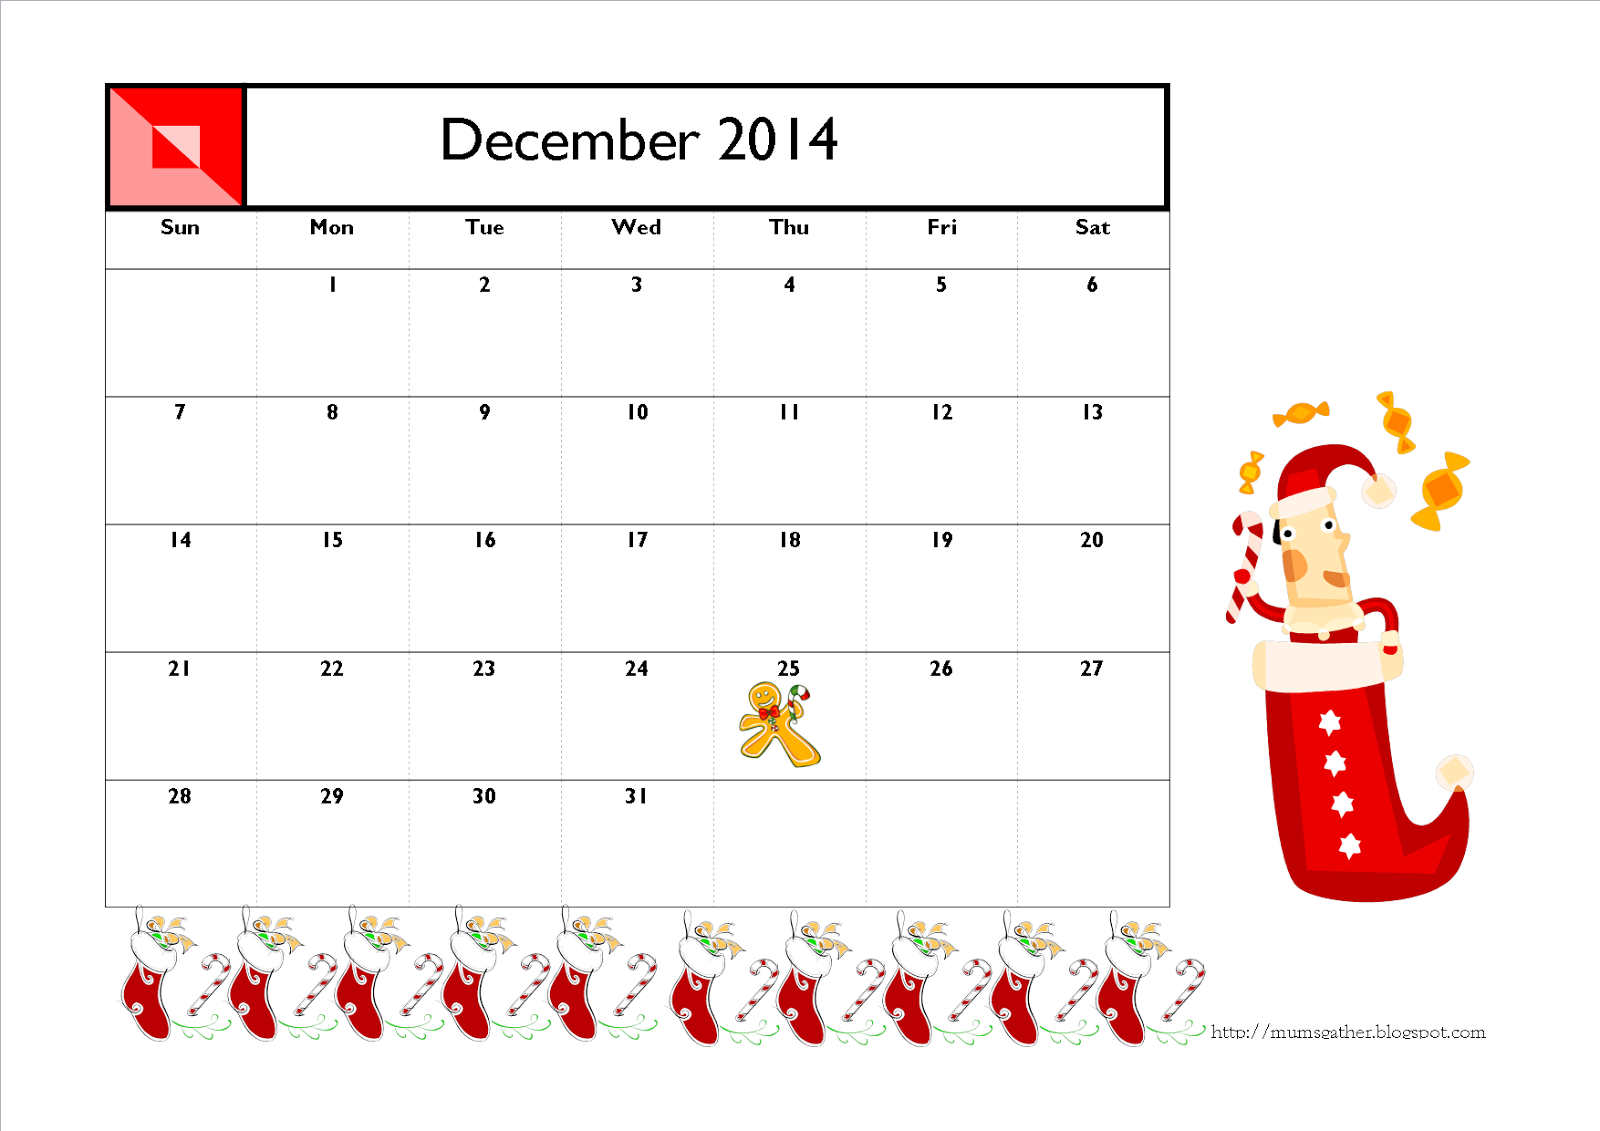 Christmas Calendar 2015 : December christmas calendar search results